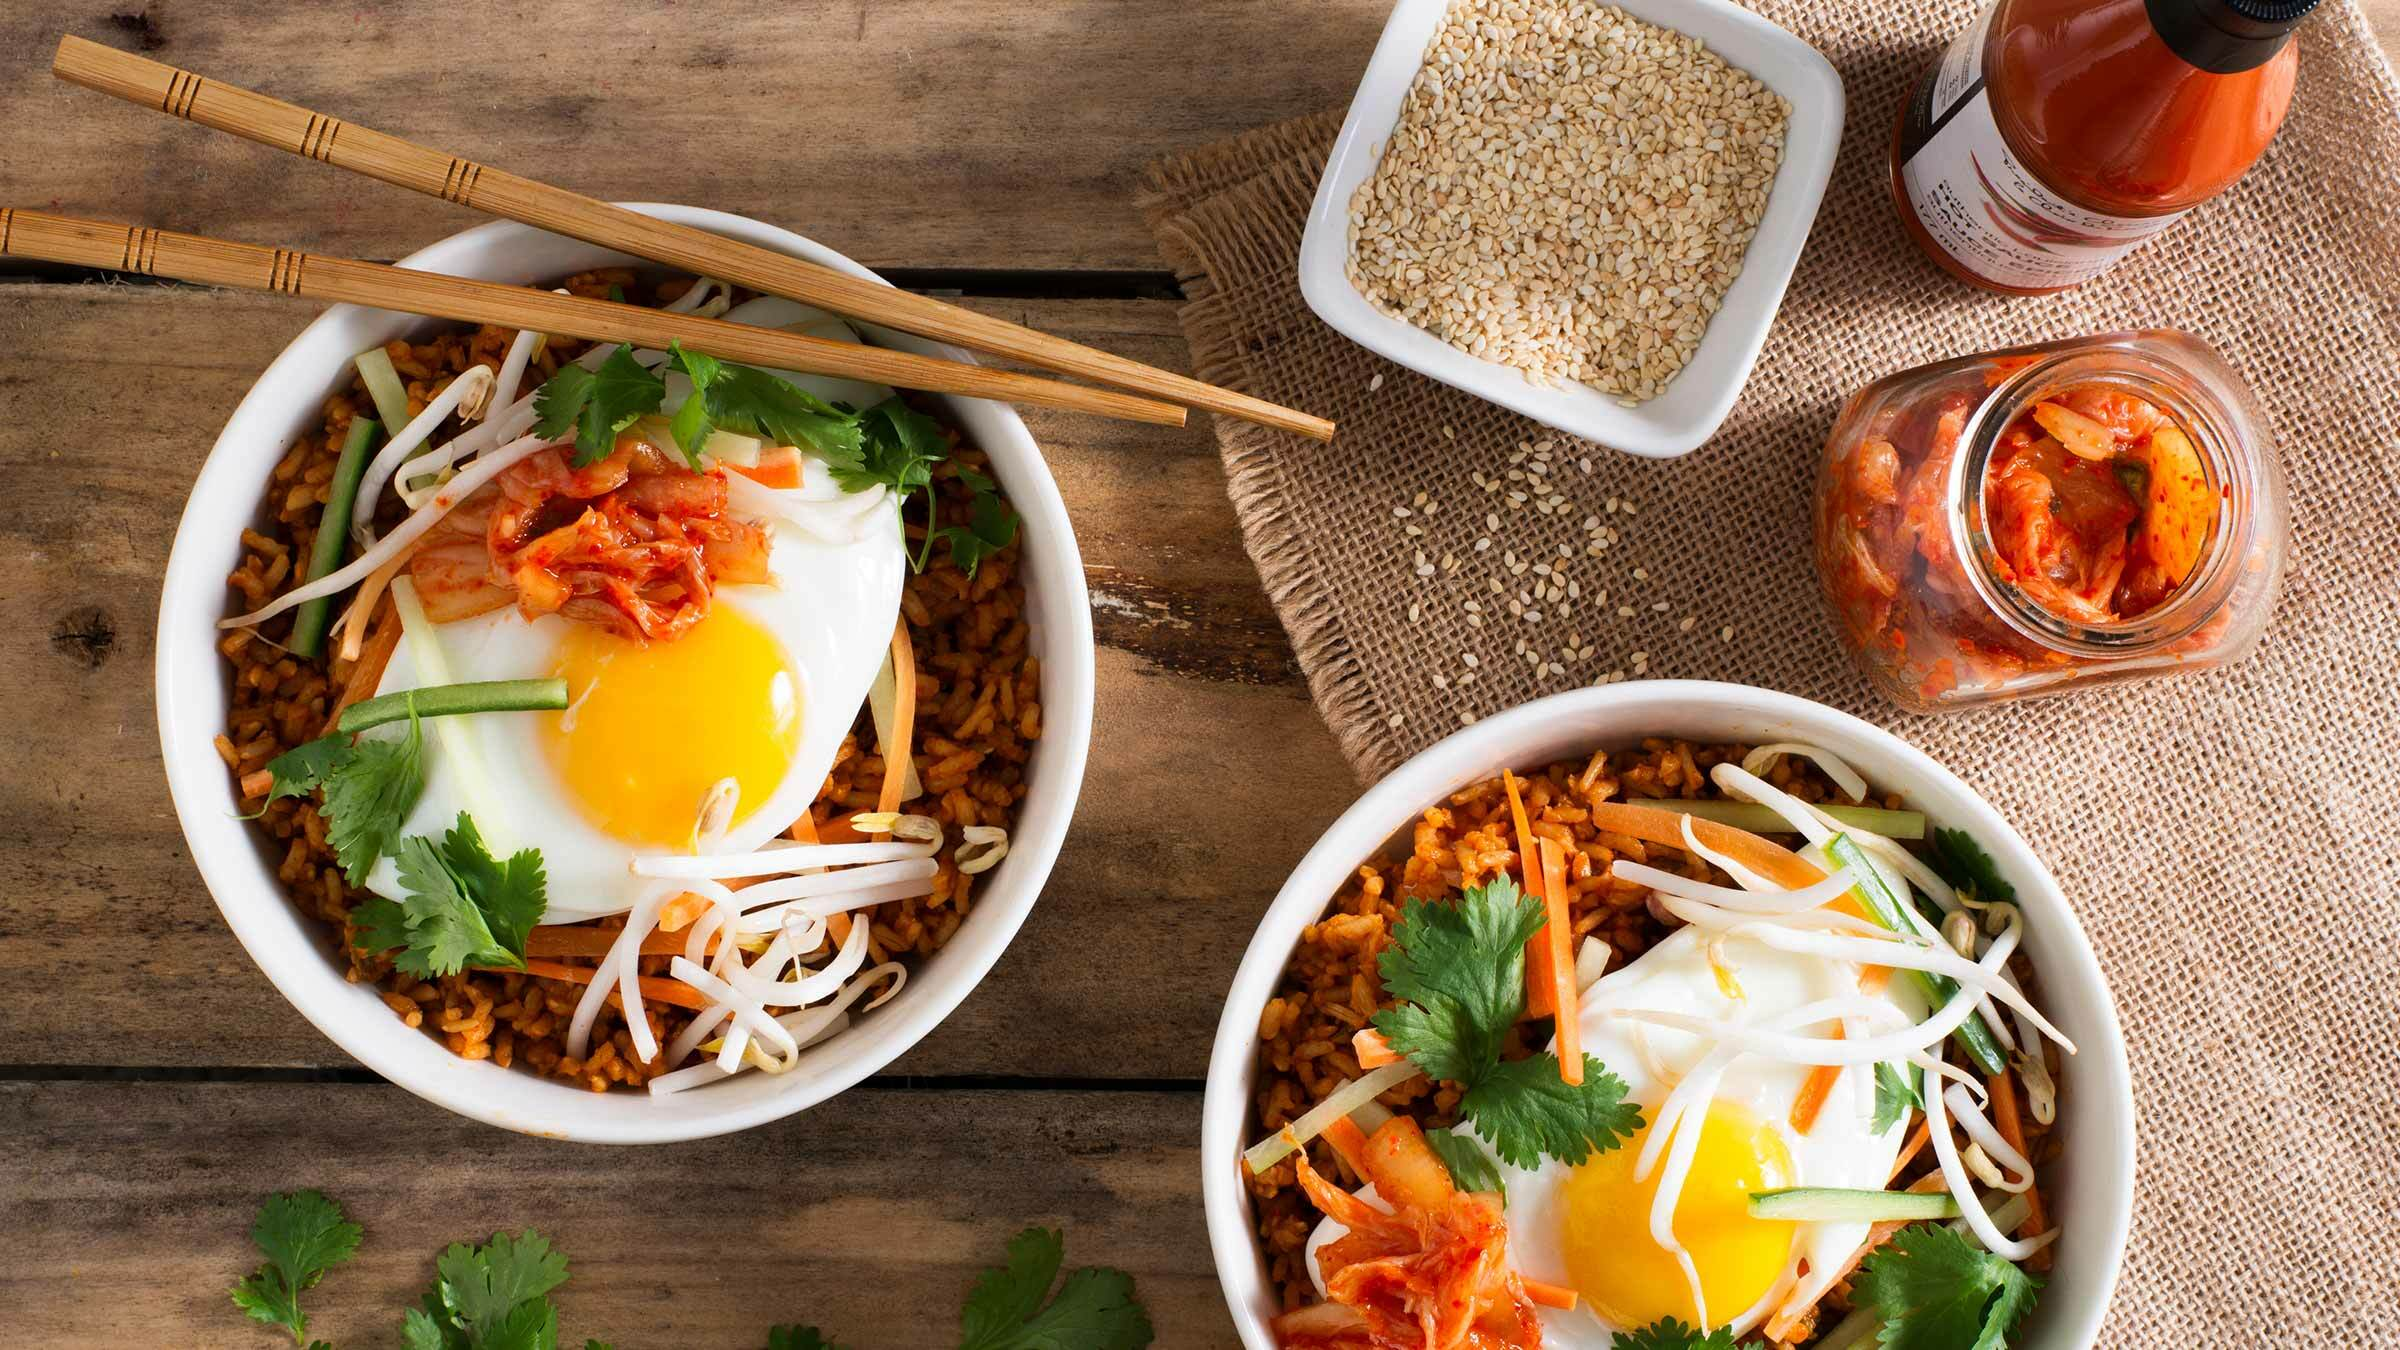 Korean-inspired bibimbap rice bowls